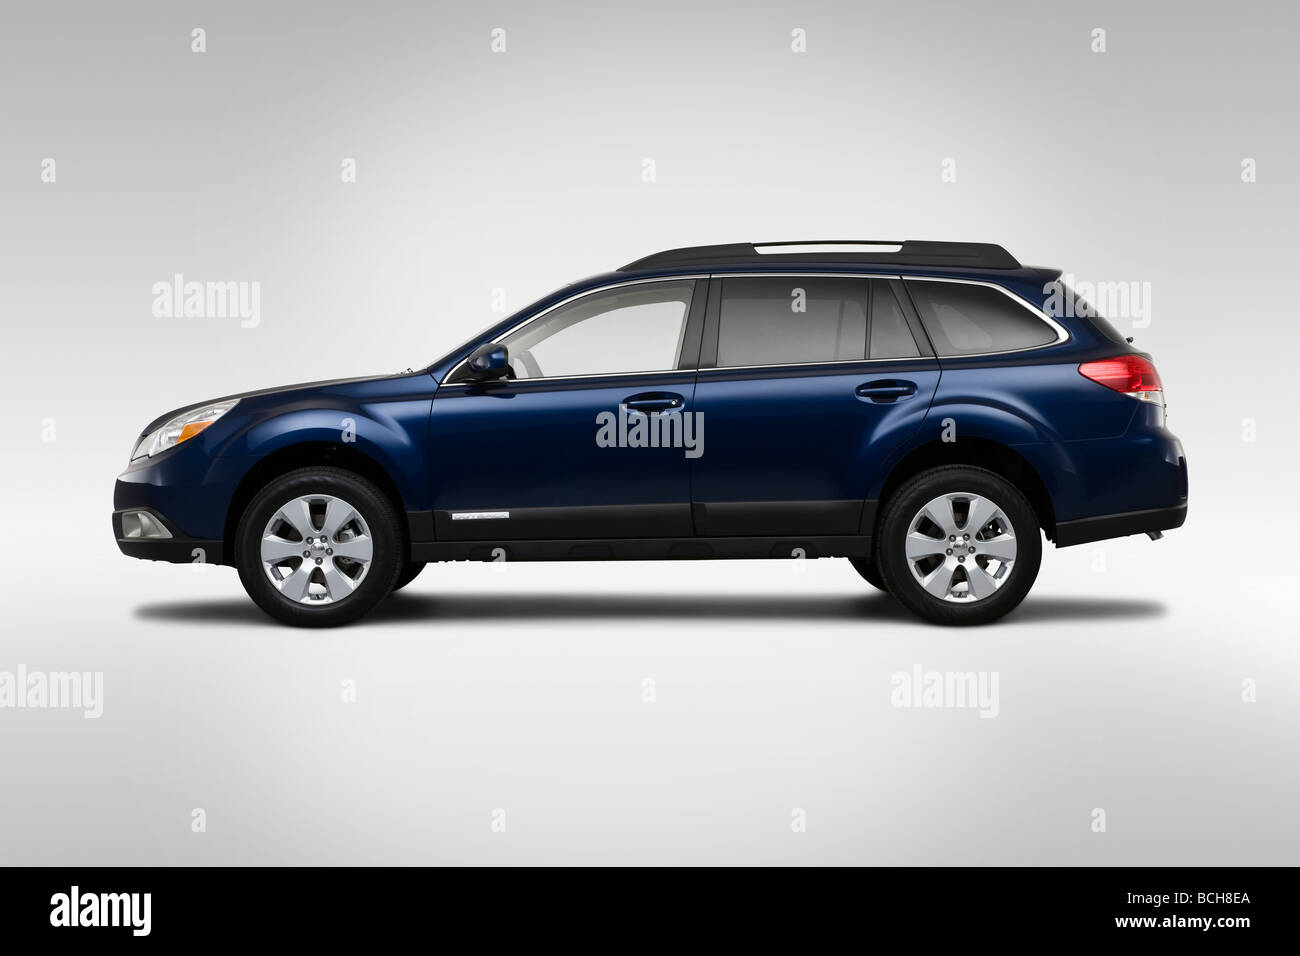 2010 subaru outback 25i limited in blue drivers side profile 2010 subaru outback 25i limited in blue drivers side profile vanachro Choice Image